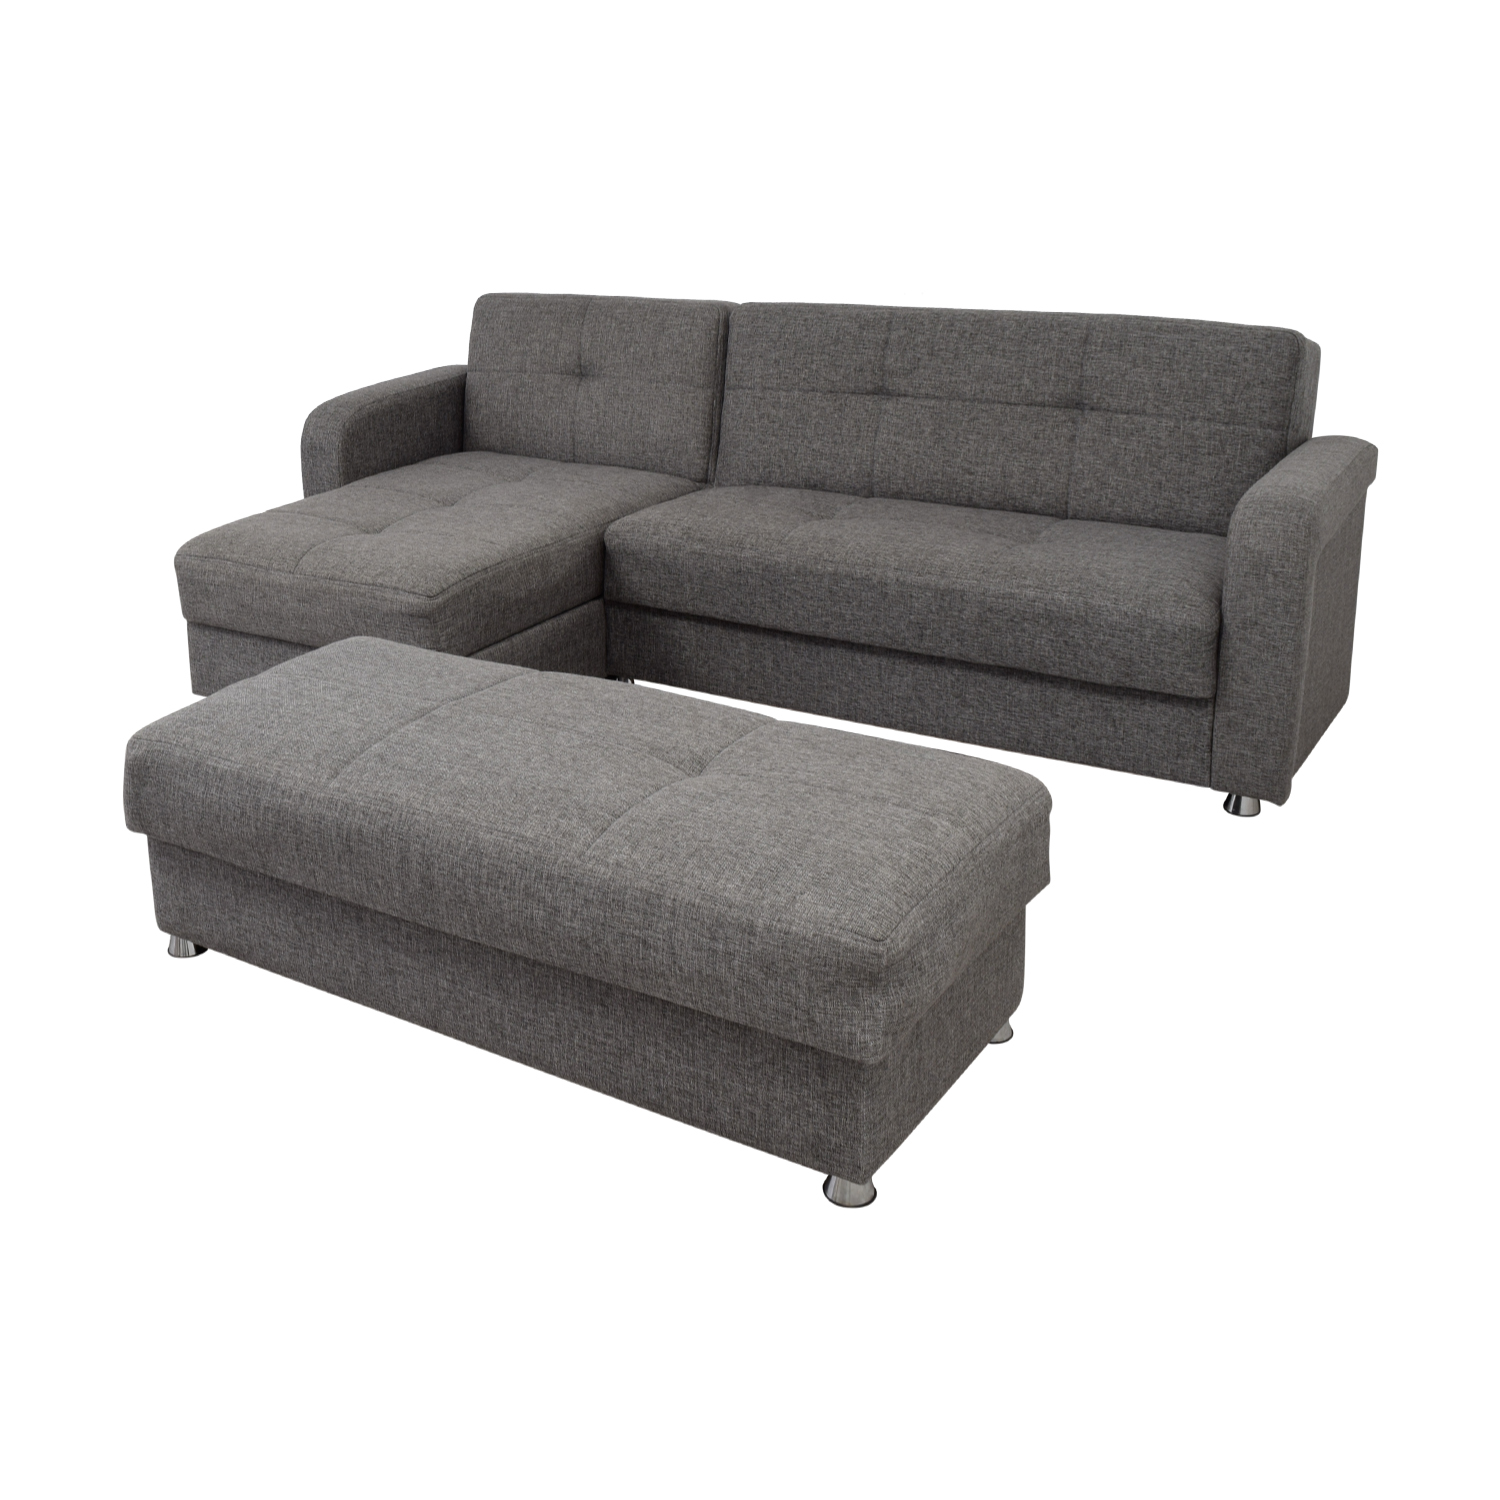 Istikbal Istikbal Grey Convertible Sectional